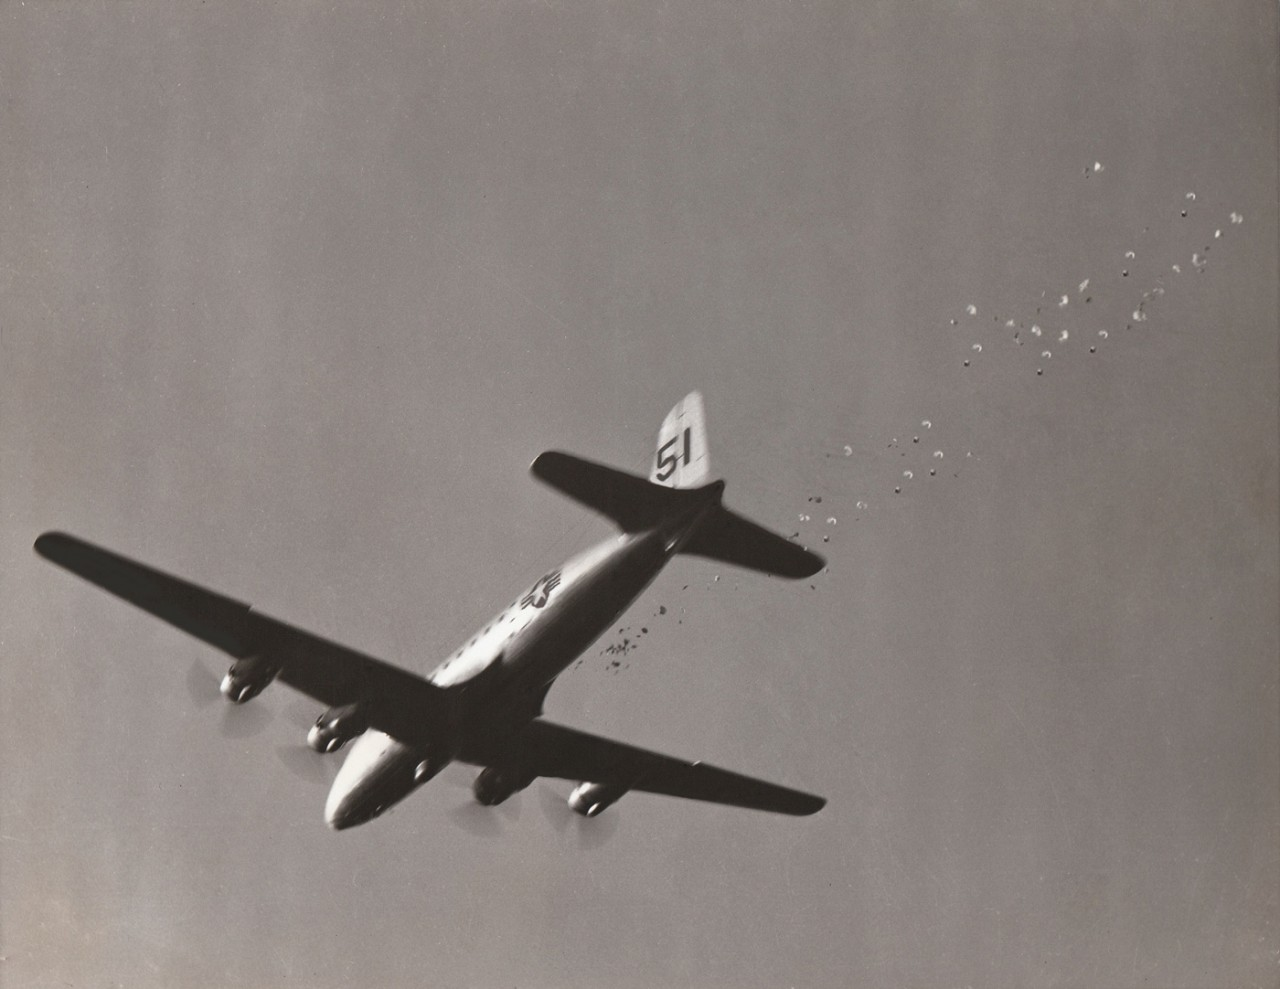 Colonel Gail S. Halvorsen (a.k.a. The Berlin Candy Bomber)